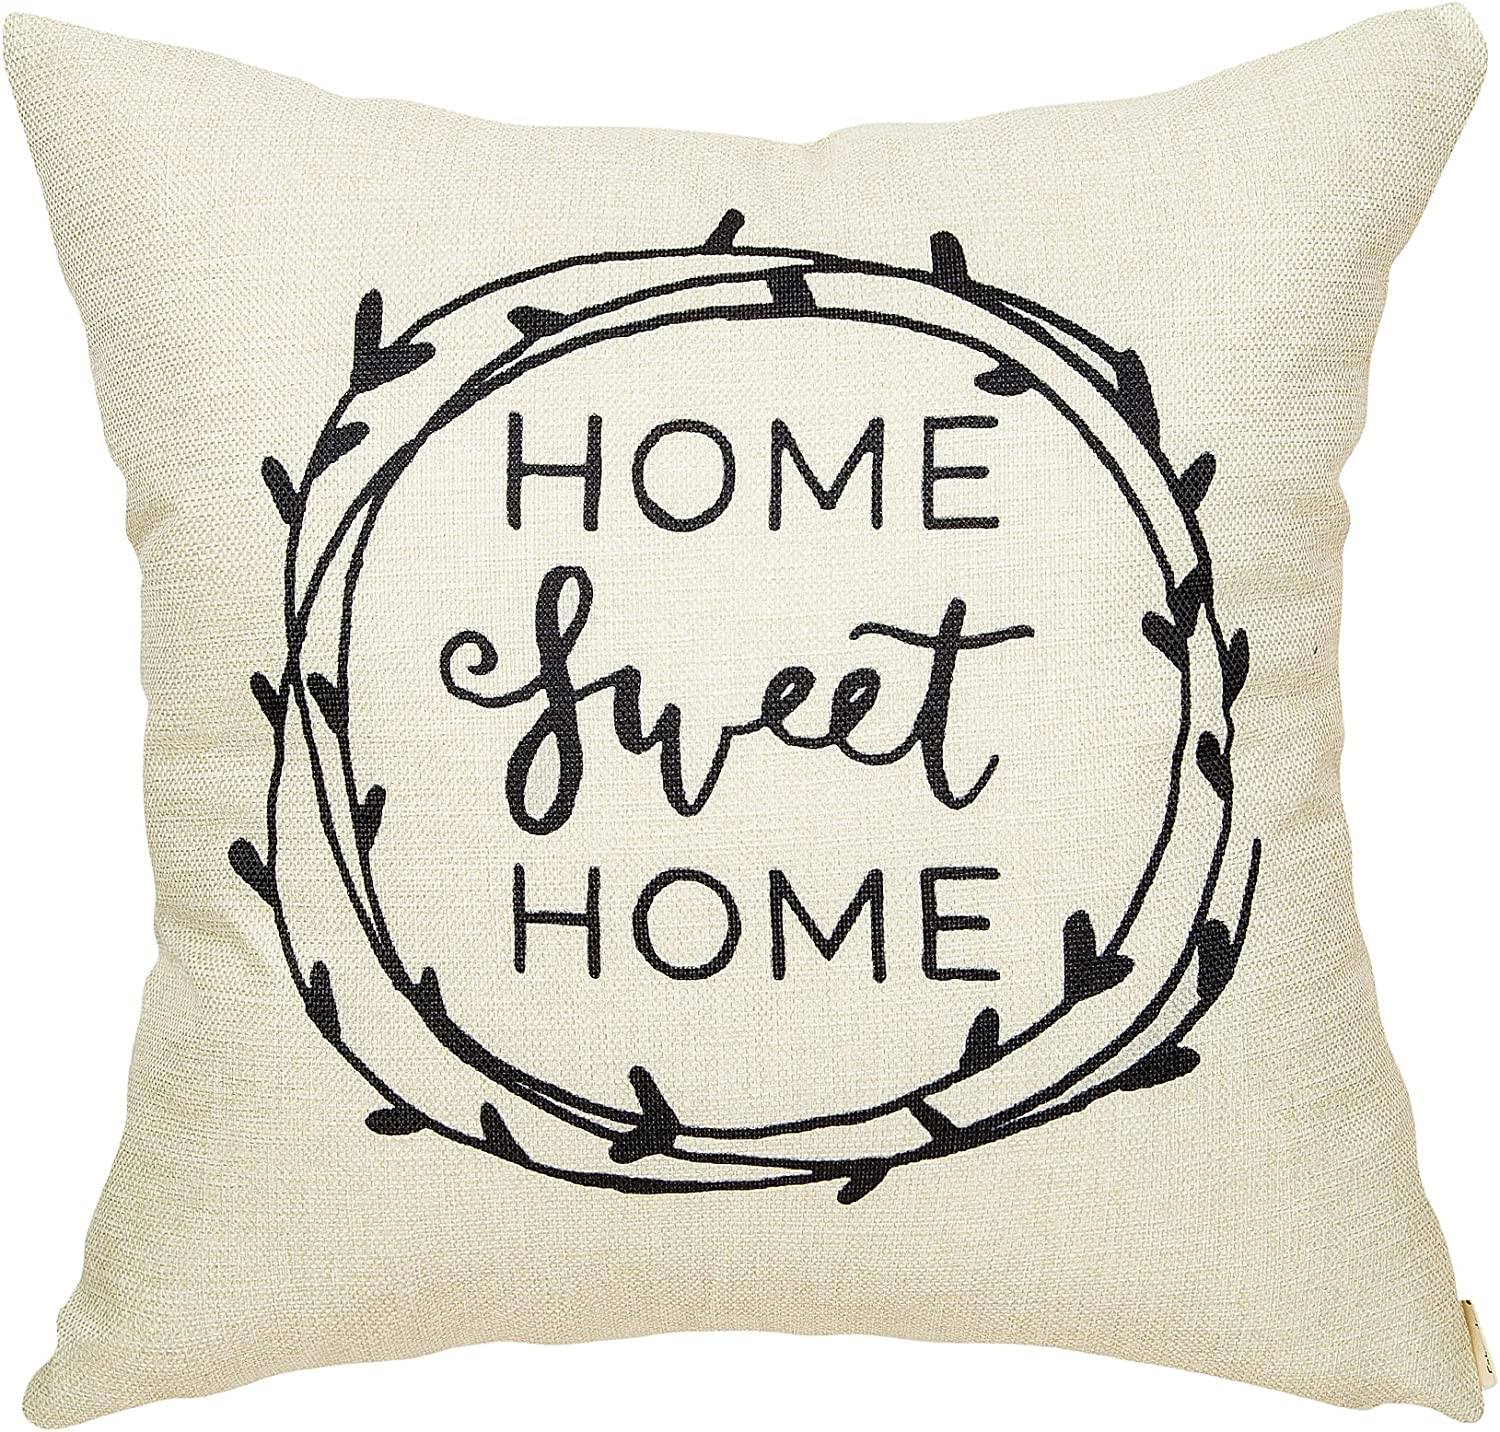 Fahrendom Rustic Home Sweet Home Olive Branch Farmhouse Decor Wedding Housewarming Gift Family Decoration Cotton Linen Home Decorative Throw Pillow Case Cushion Cover for Sofa Couch 18 x 18 in